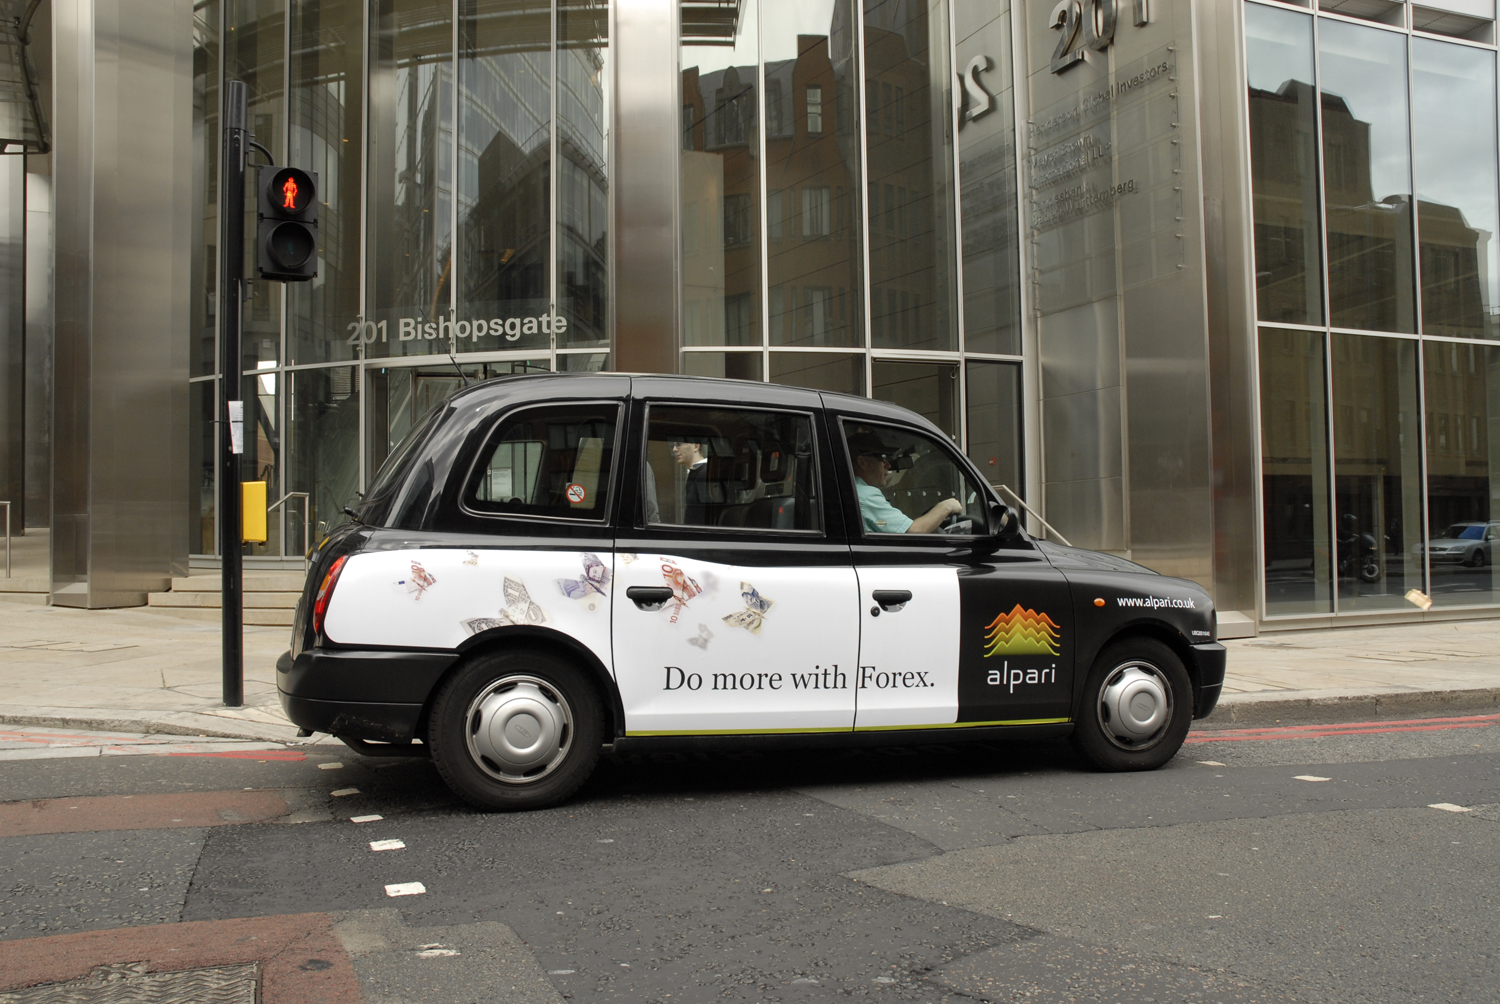 2009 Ubiquitous taxi advertising campaign for Alpari - Do more with Forex